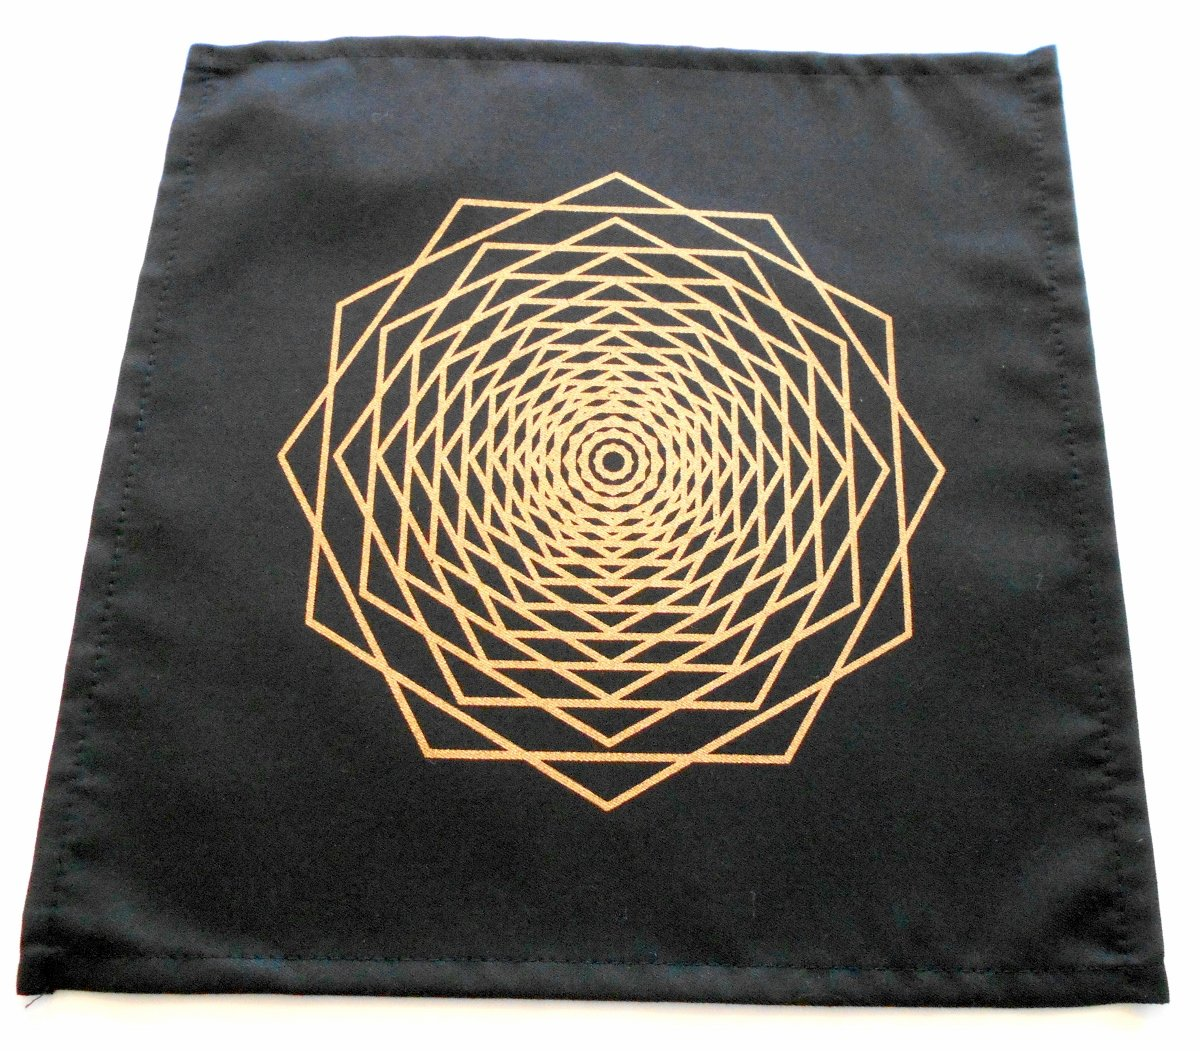 earthegy Crystal Grid Cloth Sacred Geometry Dodeca Fractal Design Kheops International